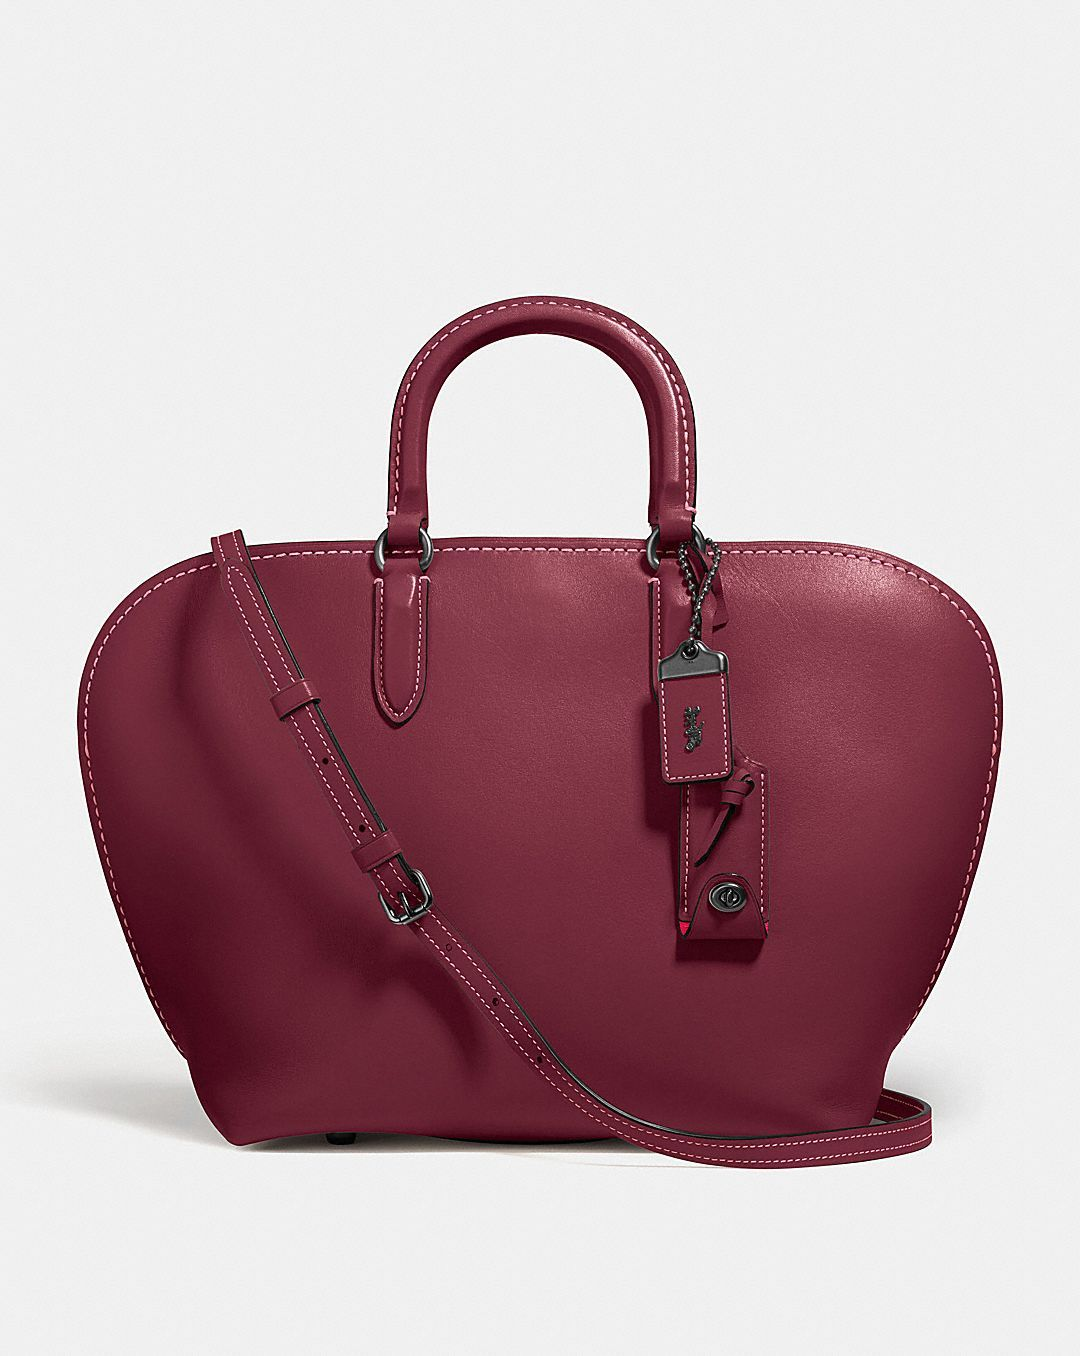 a961e58c8222 DAKOTAH SATCHEL IN GLOVETANNED LEATHER. DAKOTAH SATCHEL IN GLOVETANNED LEATHER  Coach Handbags ...